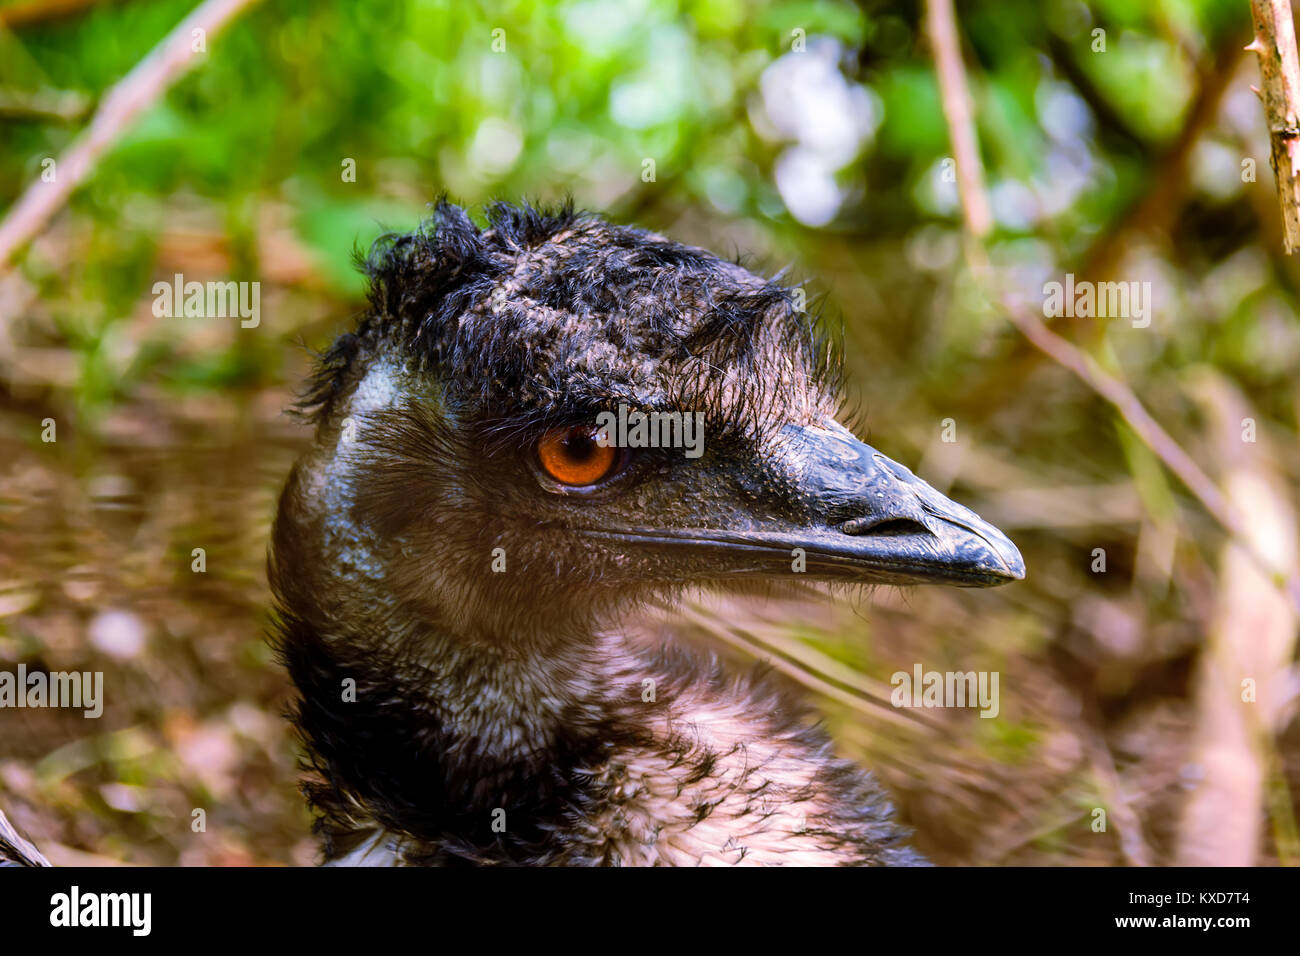 Head and gray neck of a wild animal ostrich bird with orange eyes on a blurry brownish green background - Stock Image